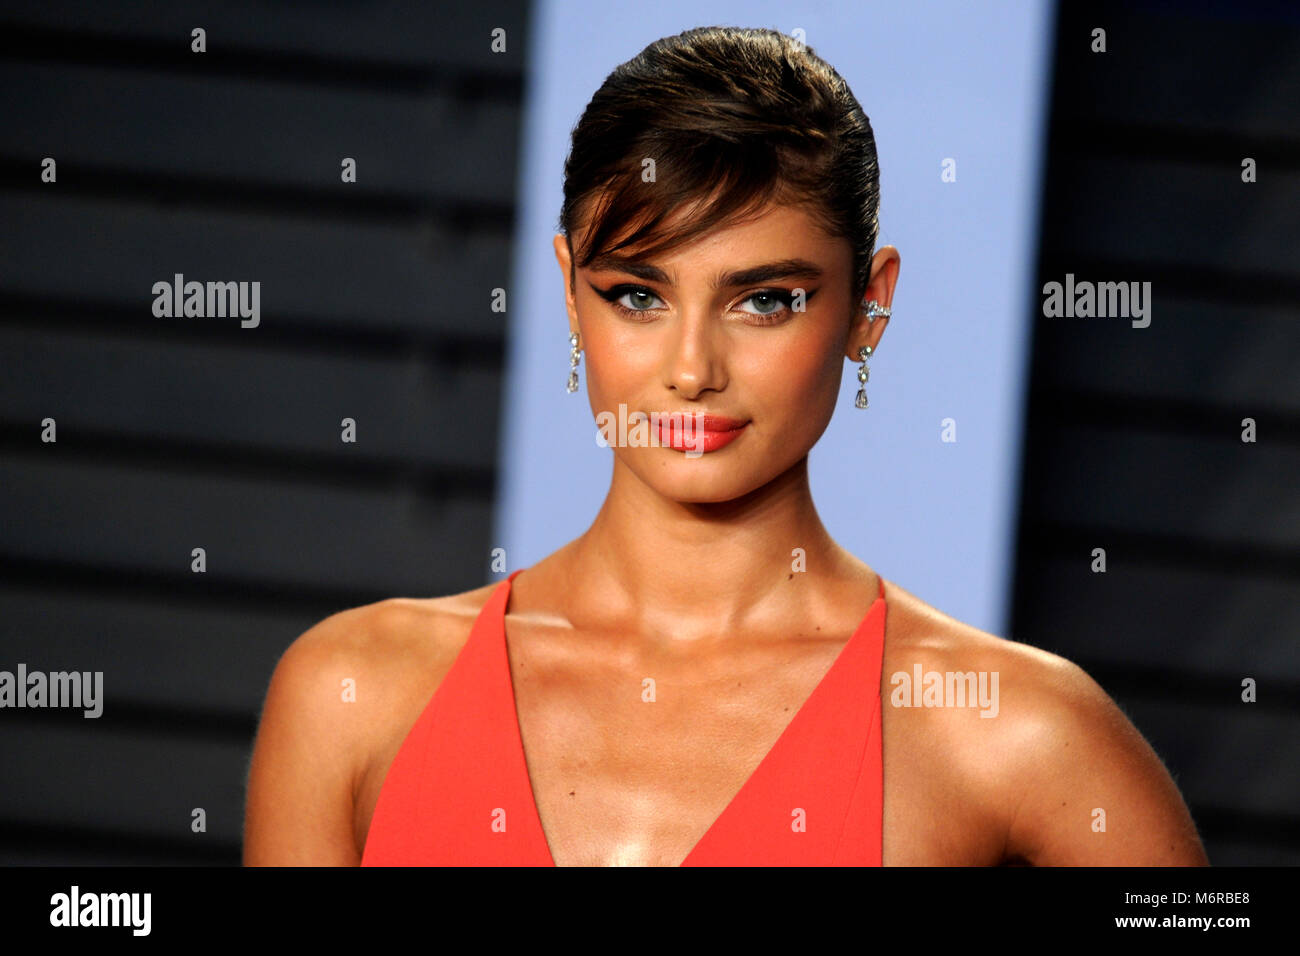 Taylor marie hill stock photos taylor marie hill stock images alamy taylor marie hill attending the 2018 vanity fair oscar party hosted by radhika jones at wallis altavistaventures Choice Image